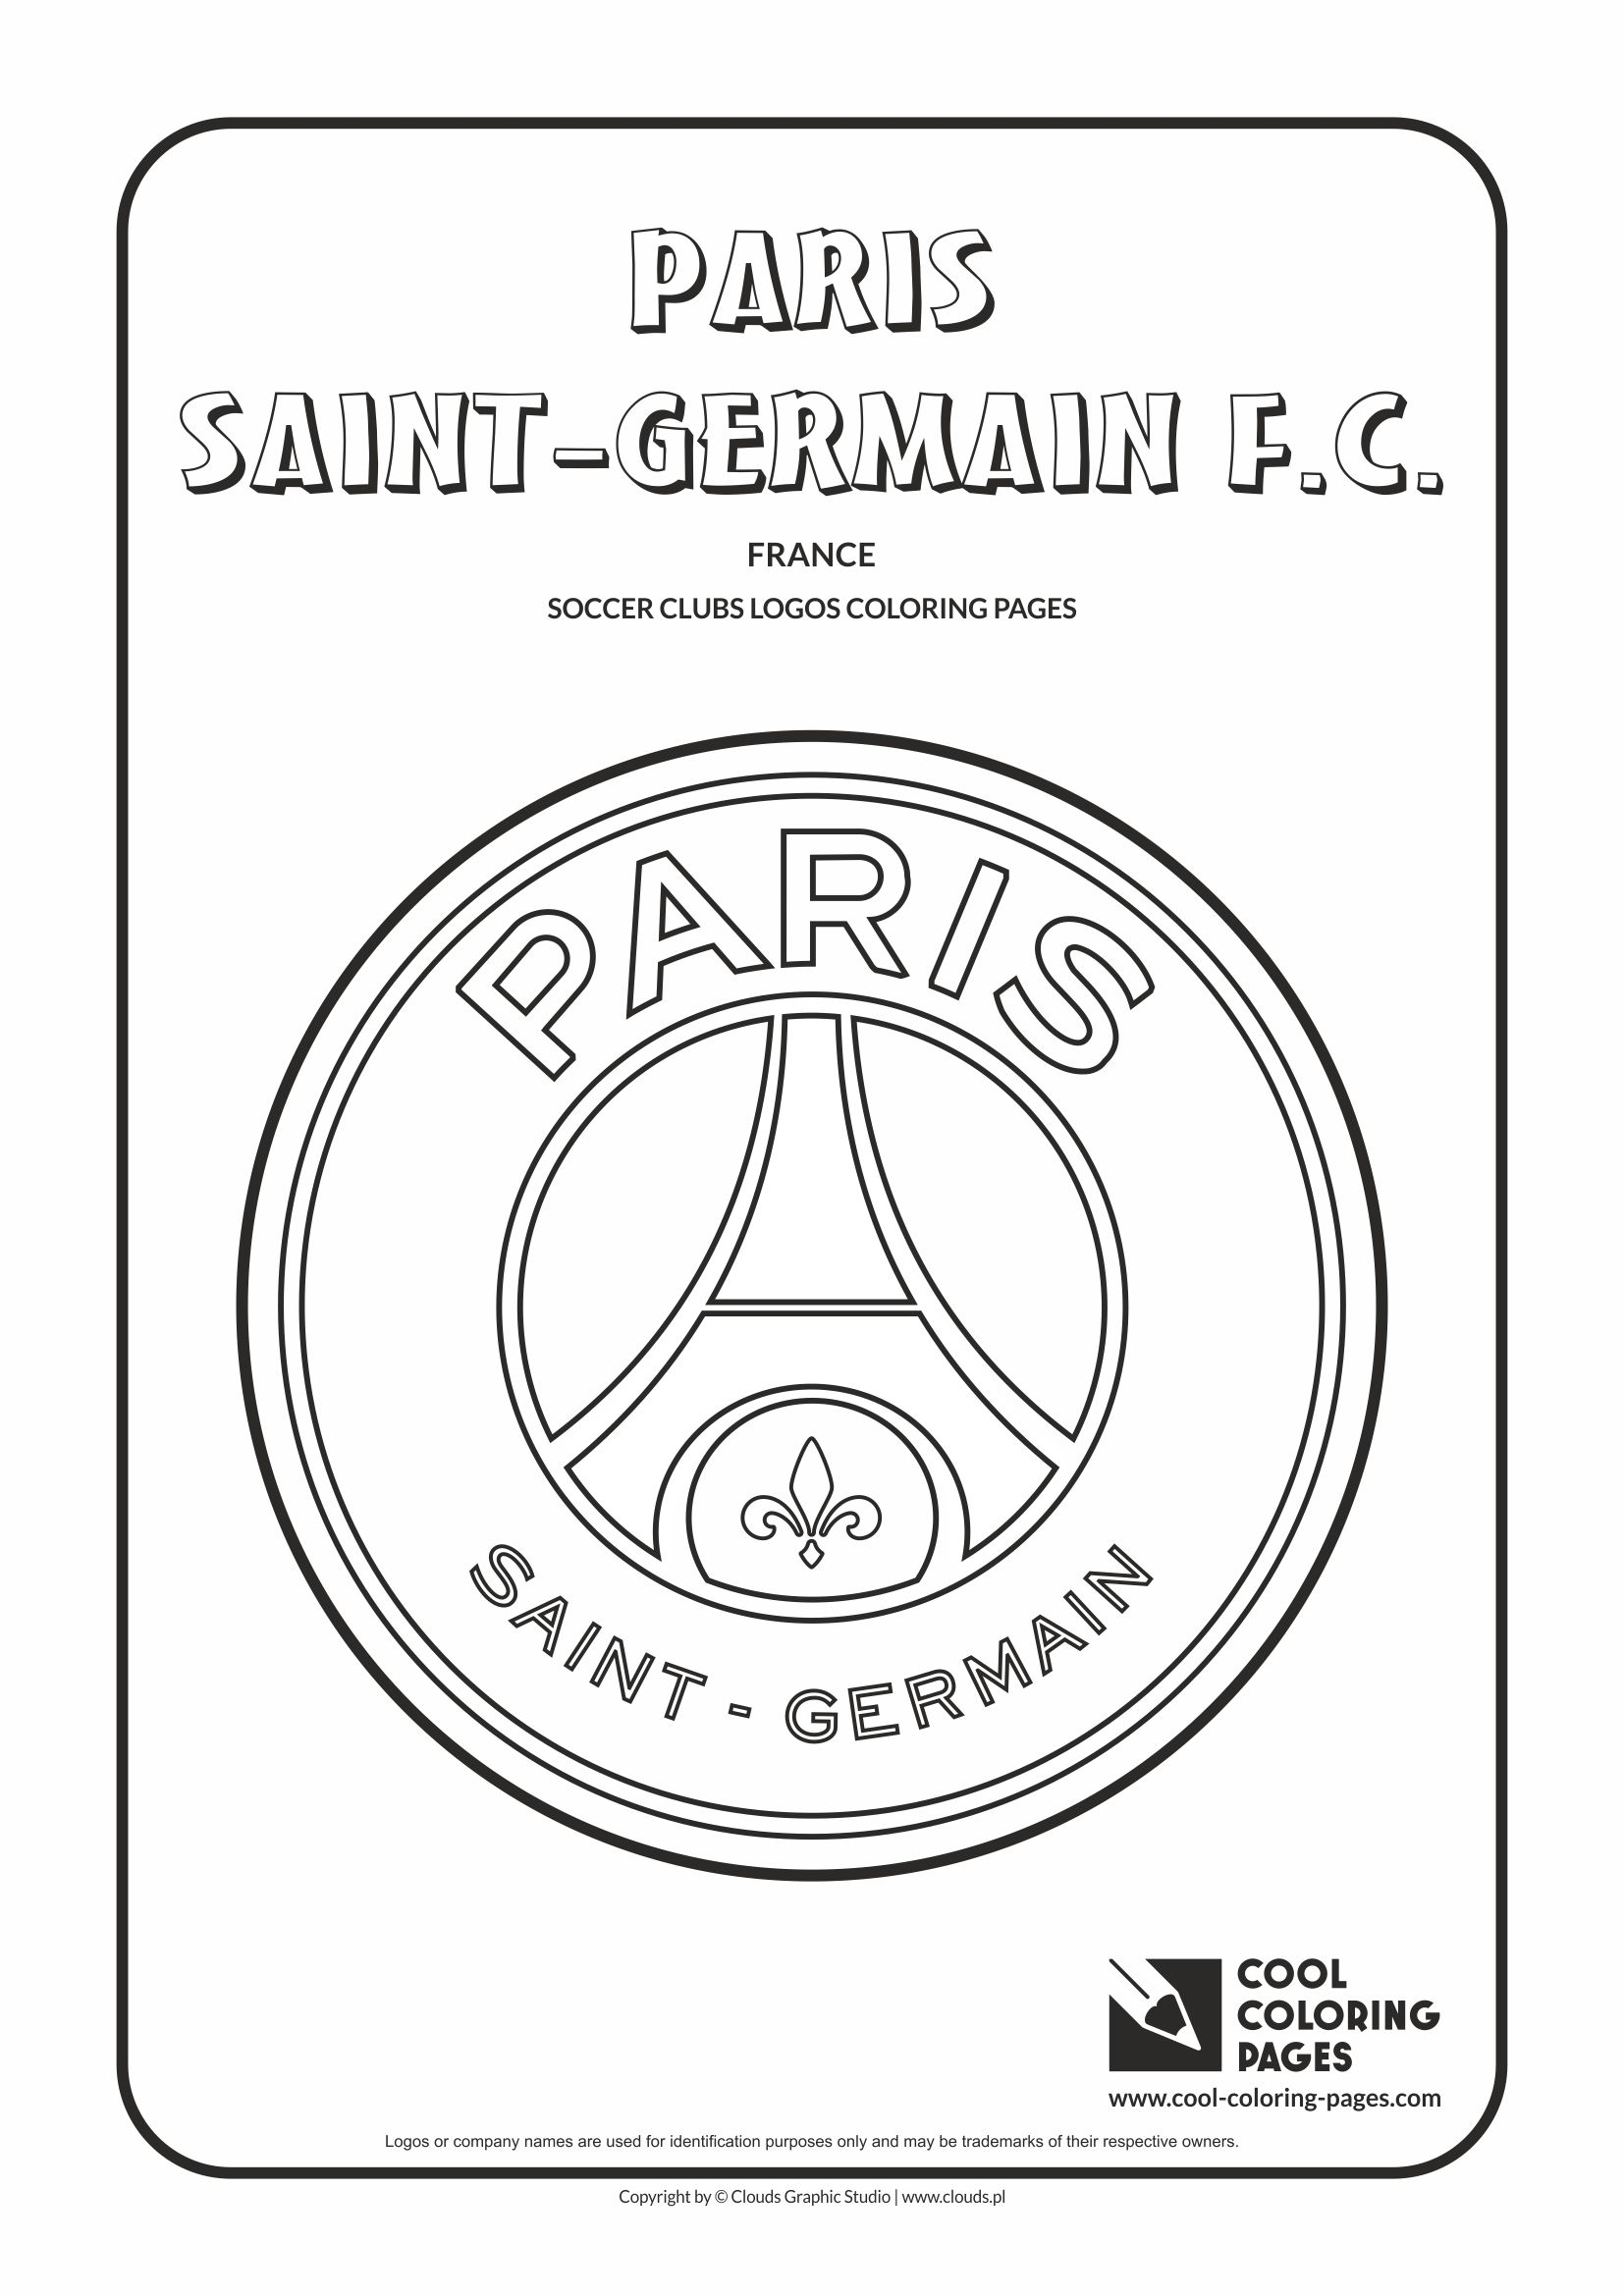 Cool Coloring Pages Paris SaintGermain